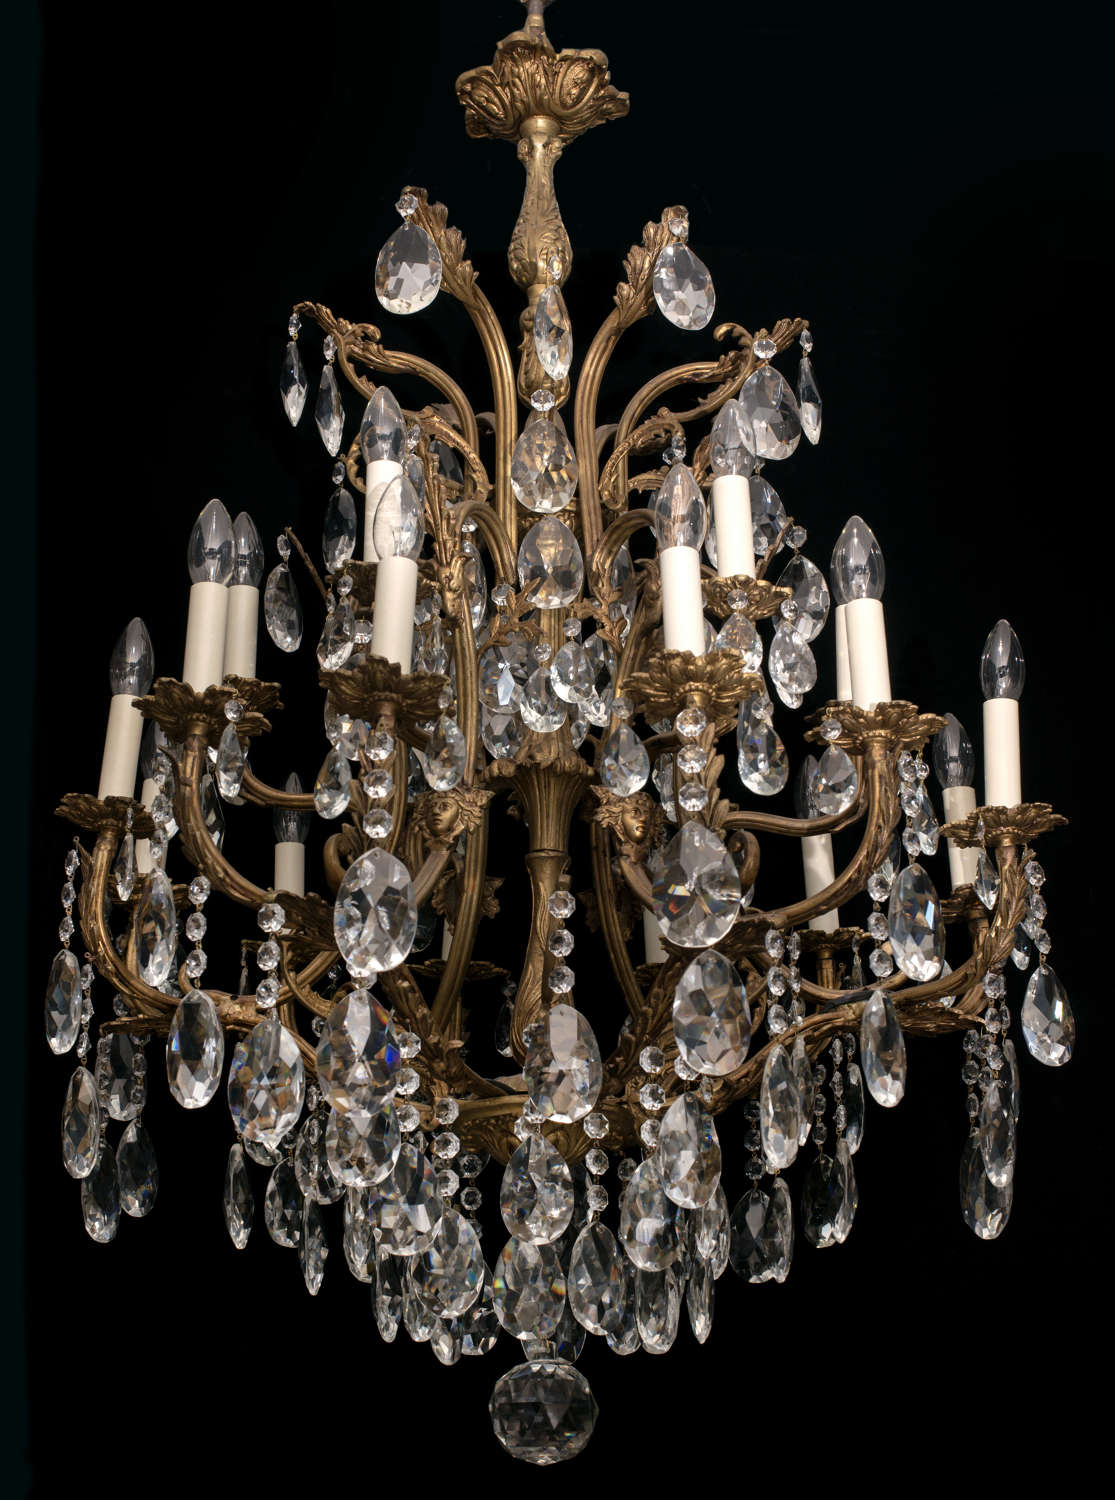 Very Large 18 light Italian Antique Chandelier with ladies faces